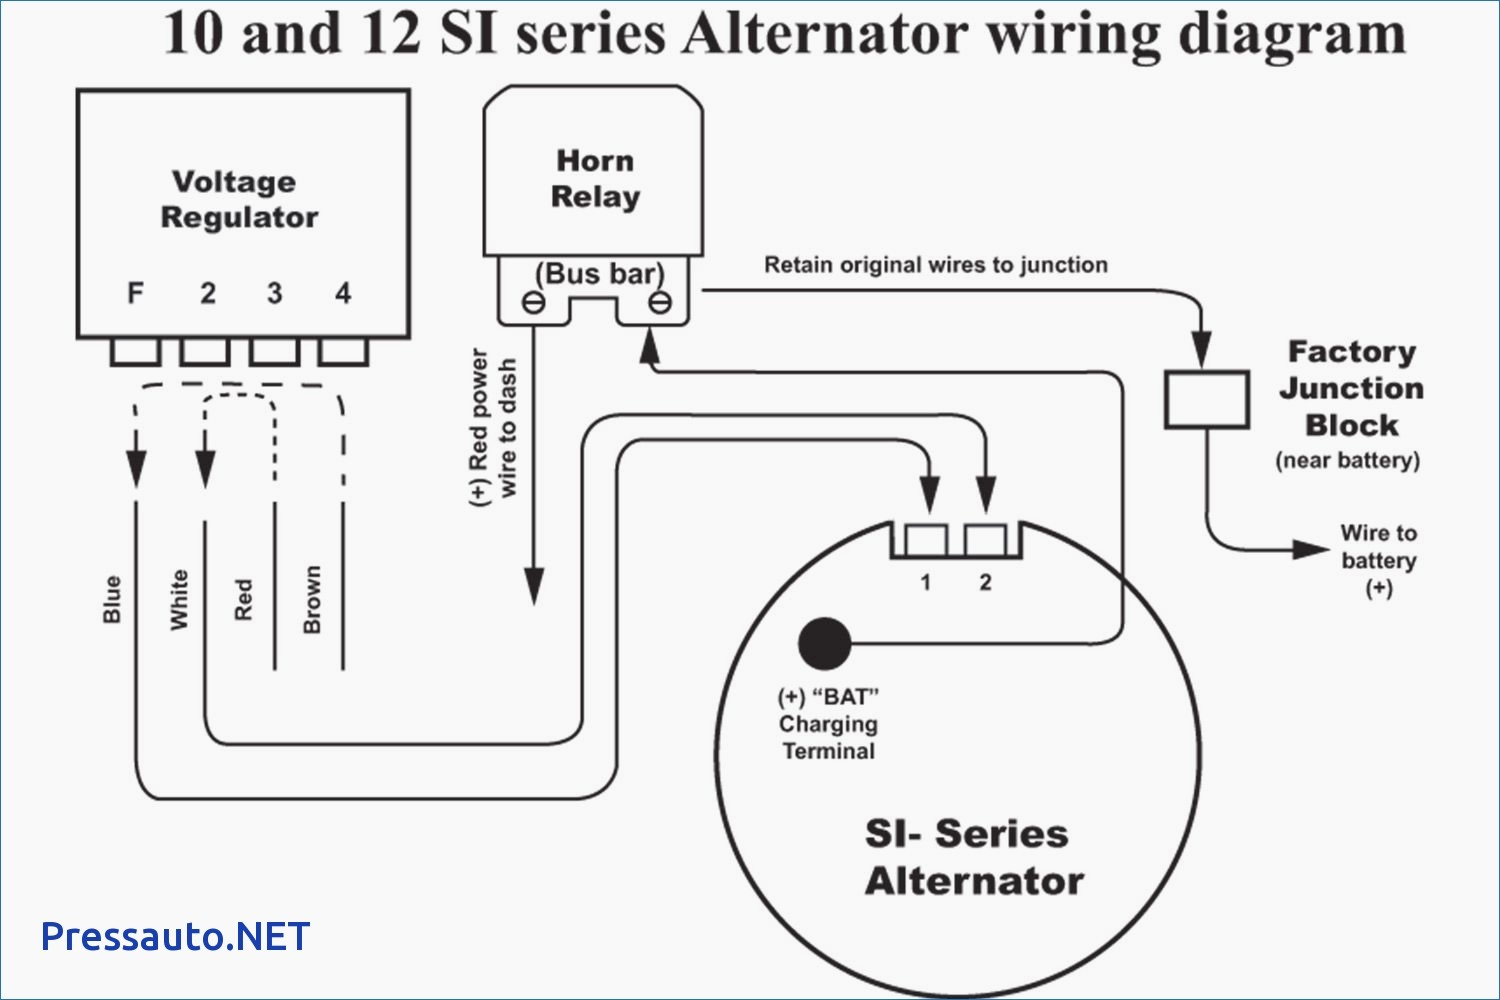 Gm 2 Wire Alternator Wiring Diagram 1 Hook And For Gm Alternator - Gm 2 Wire Alternator Wiring Diagram